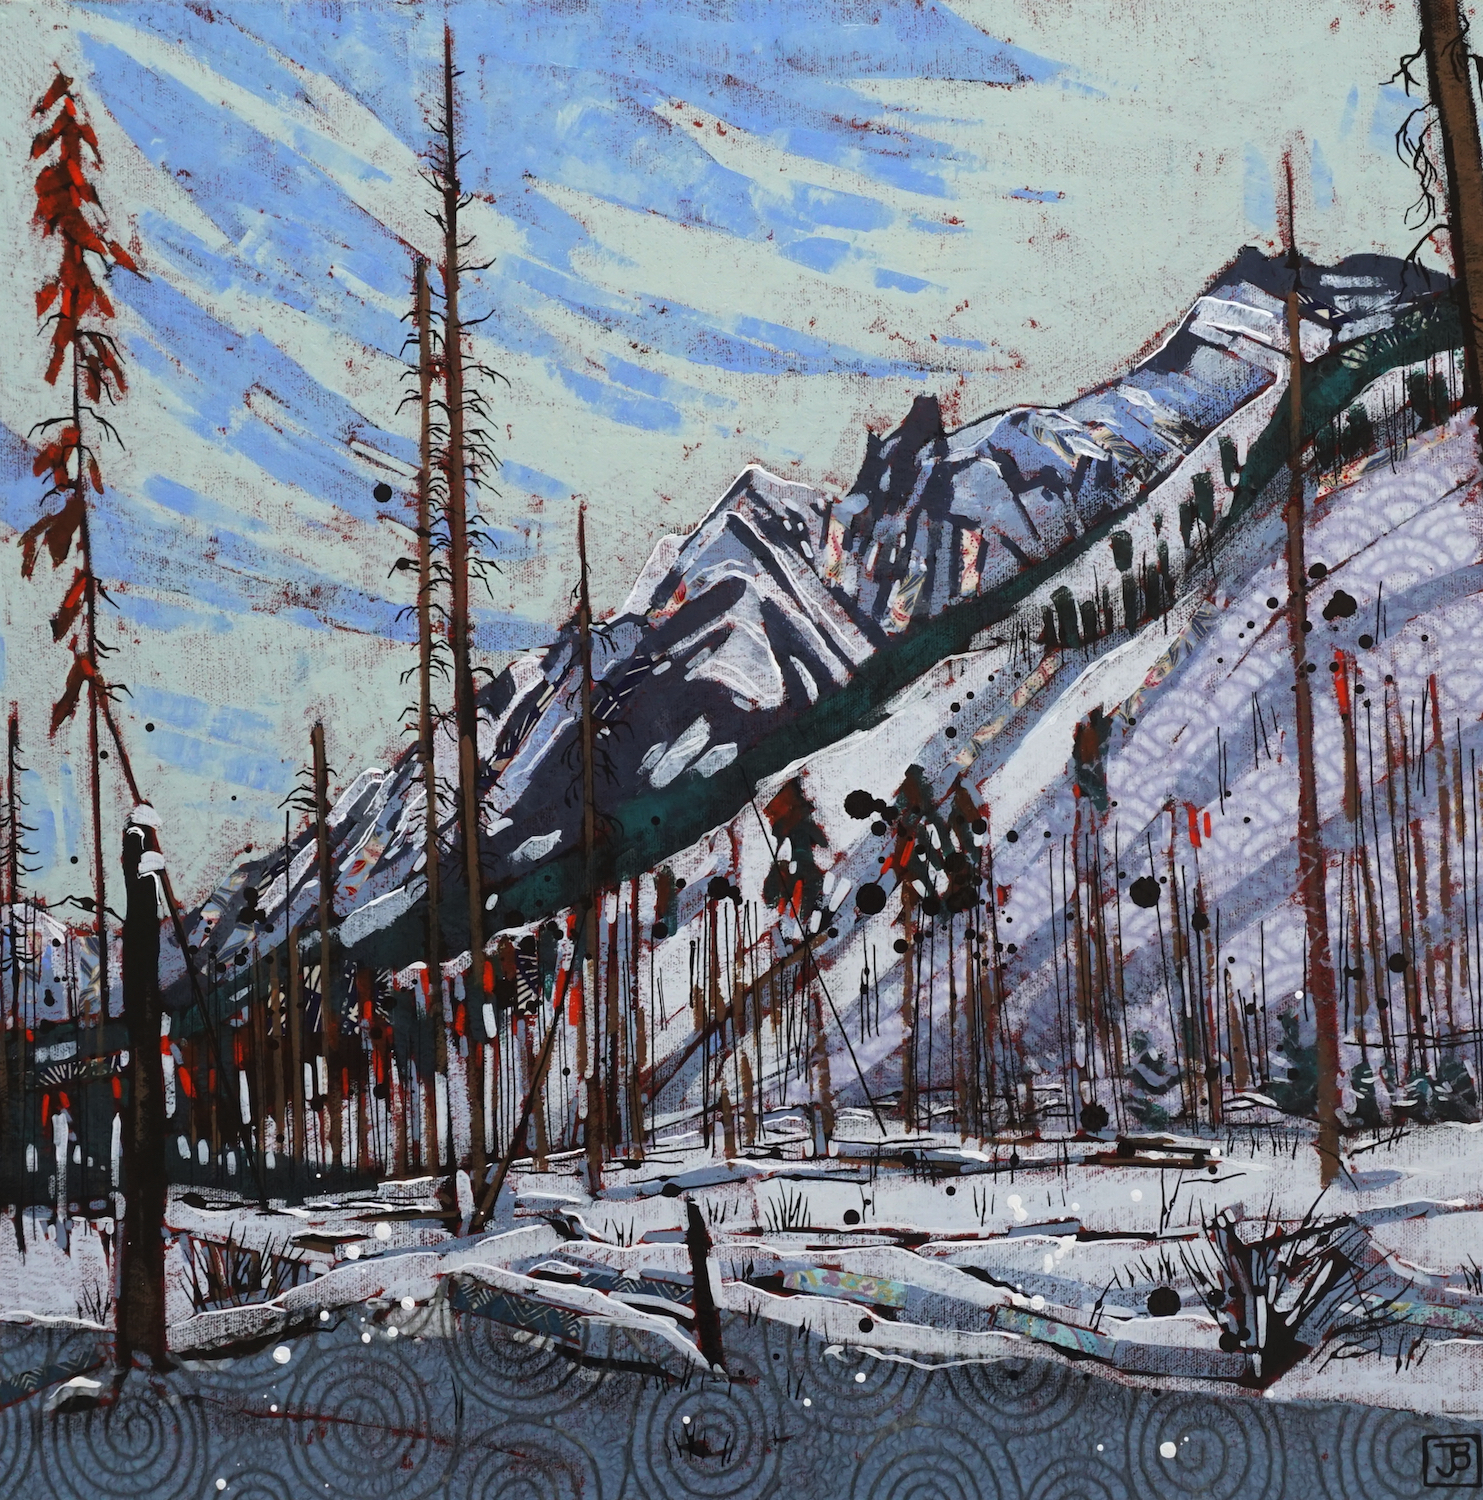 sawback prescribed burn area, bow valley parkway, banff national park, ab,  mixed media on canvas, 20x20(in), $800 + GST,  2019